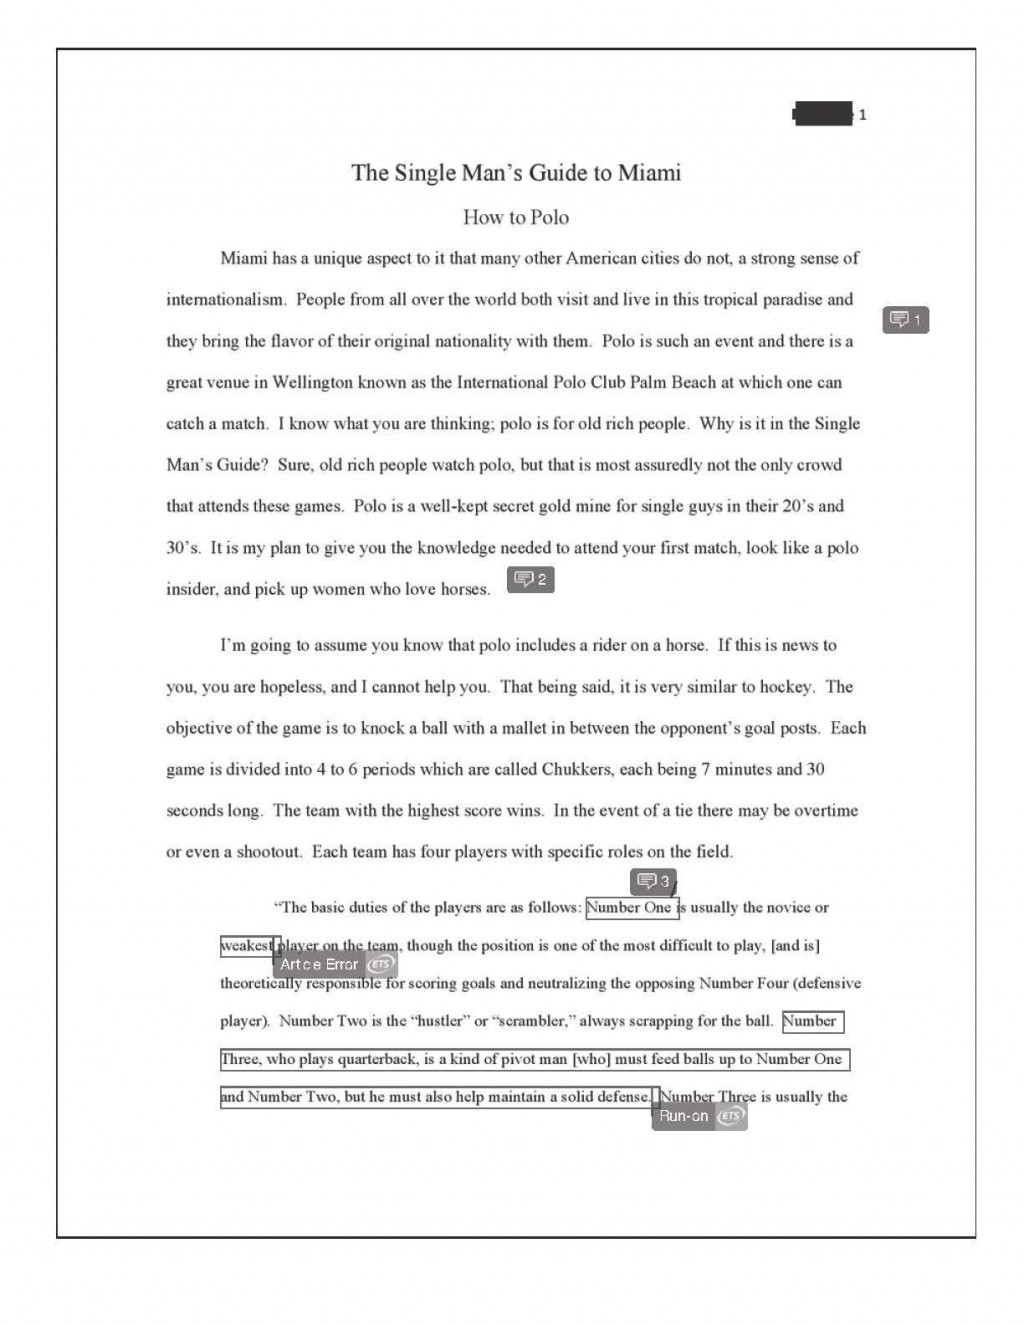 006 Writing An Informative Essay Example Of About Education Examples Essays Utopia Instruction Final How To Polo Redacted P Quiz Sensational The Immigrant Experience Ppt Introduction Large